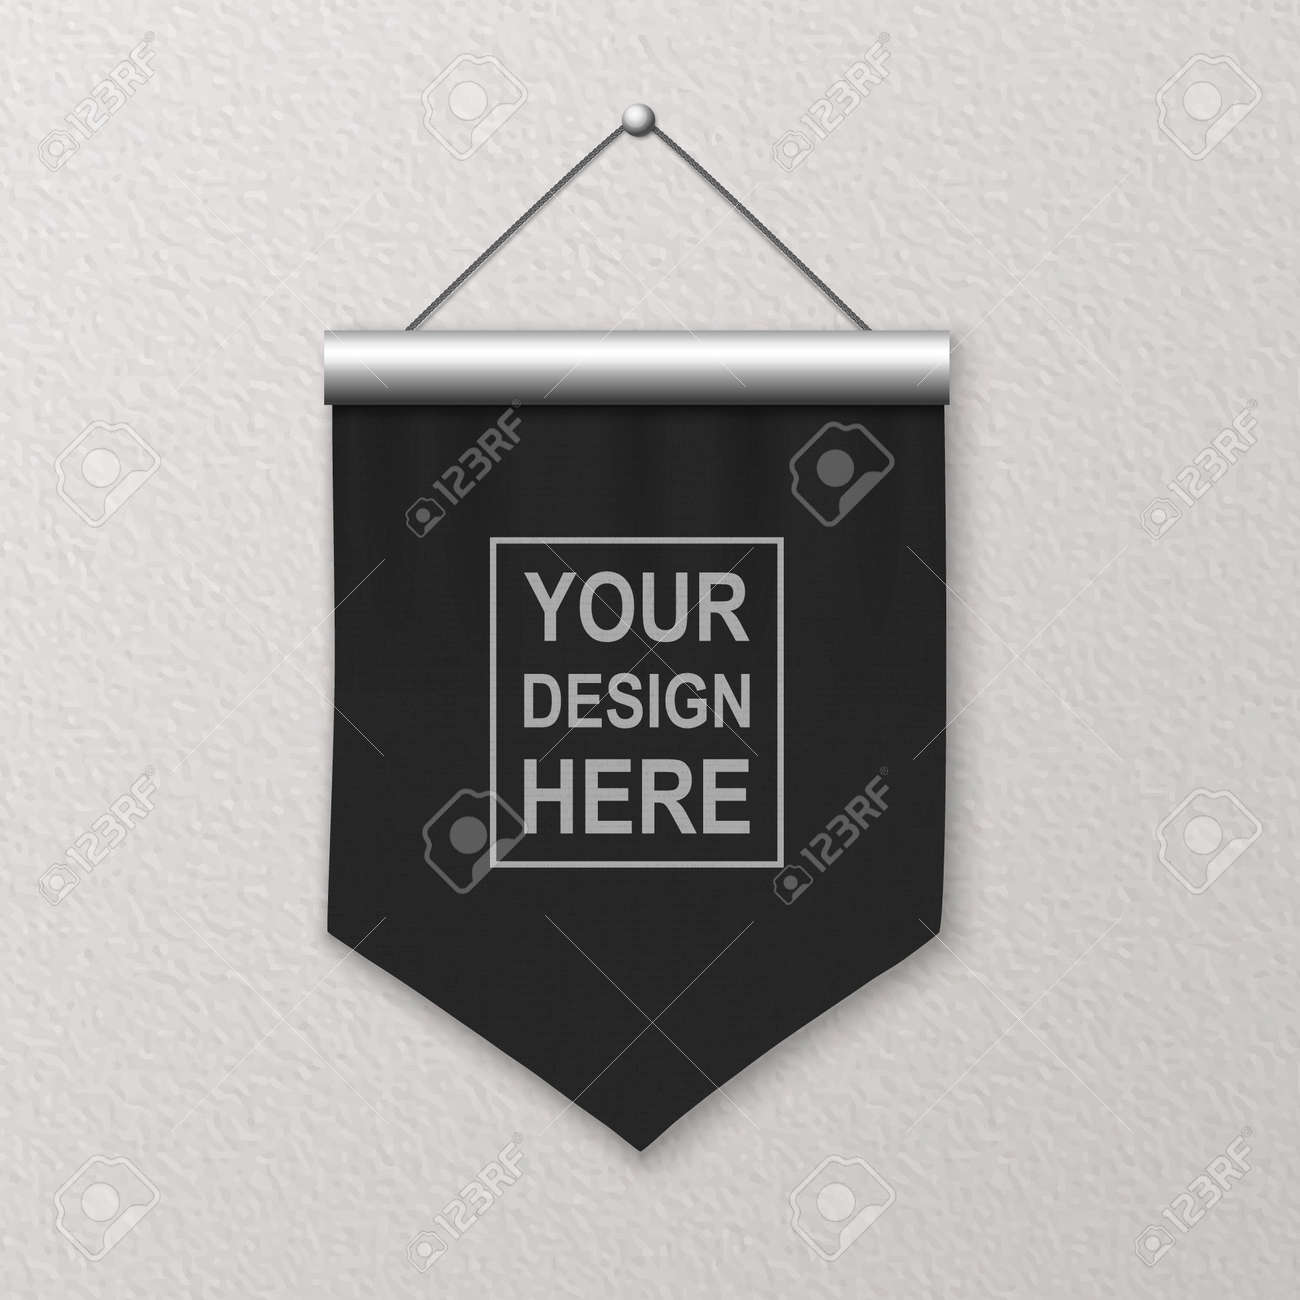 Vector 3d Realistic Blank Black Pennant Wall Hanging, Design Template, Mockup. Linen Pennant Closeup on Textured Wall. Empty Fabric Flag, Advertising Canvas Banner - 173417575